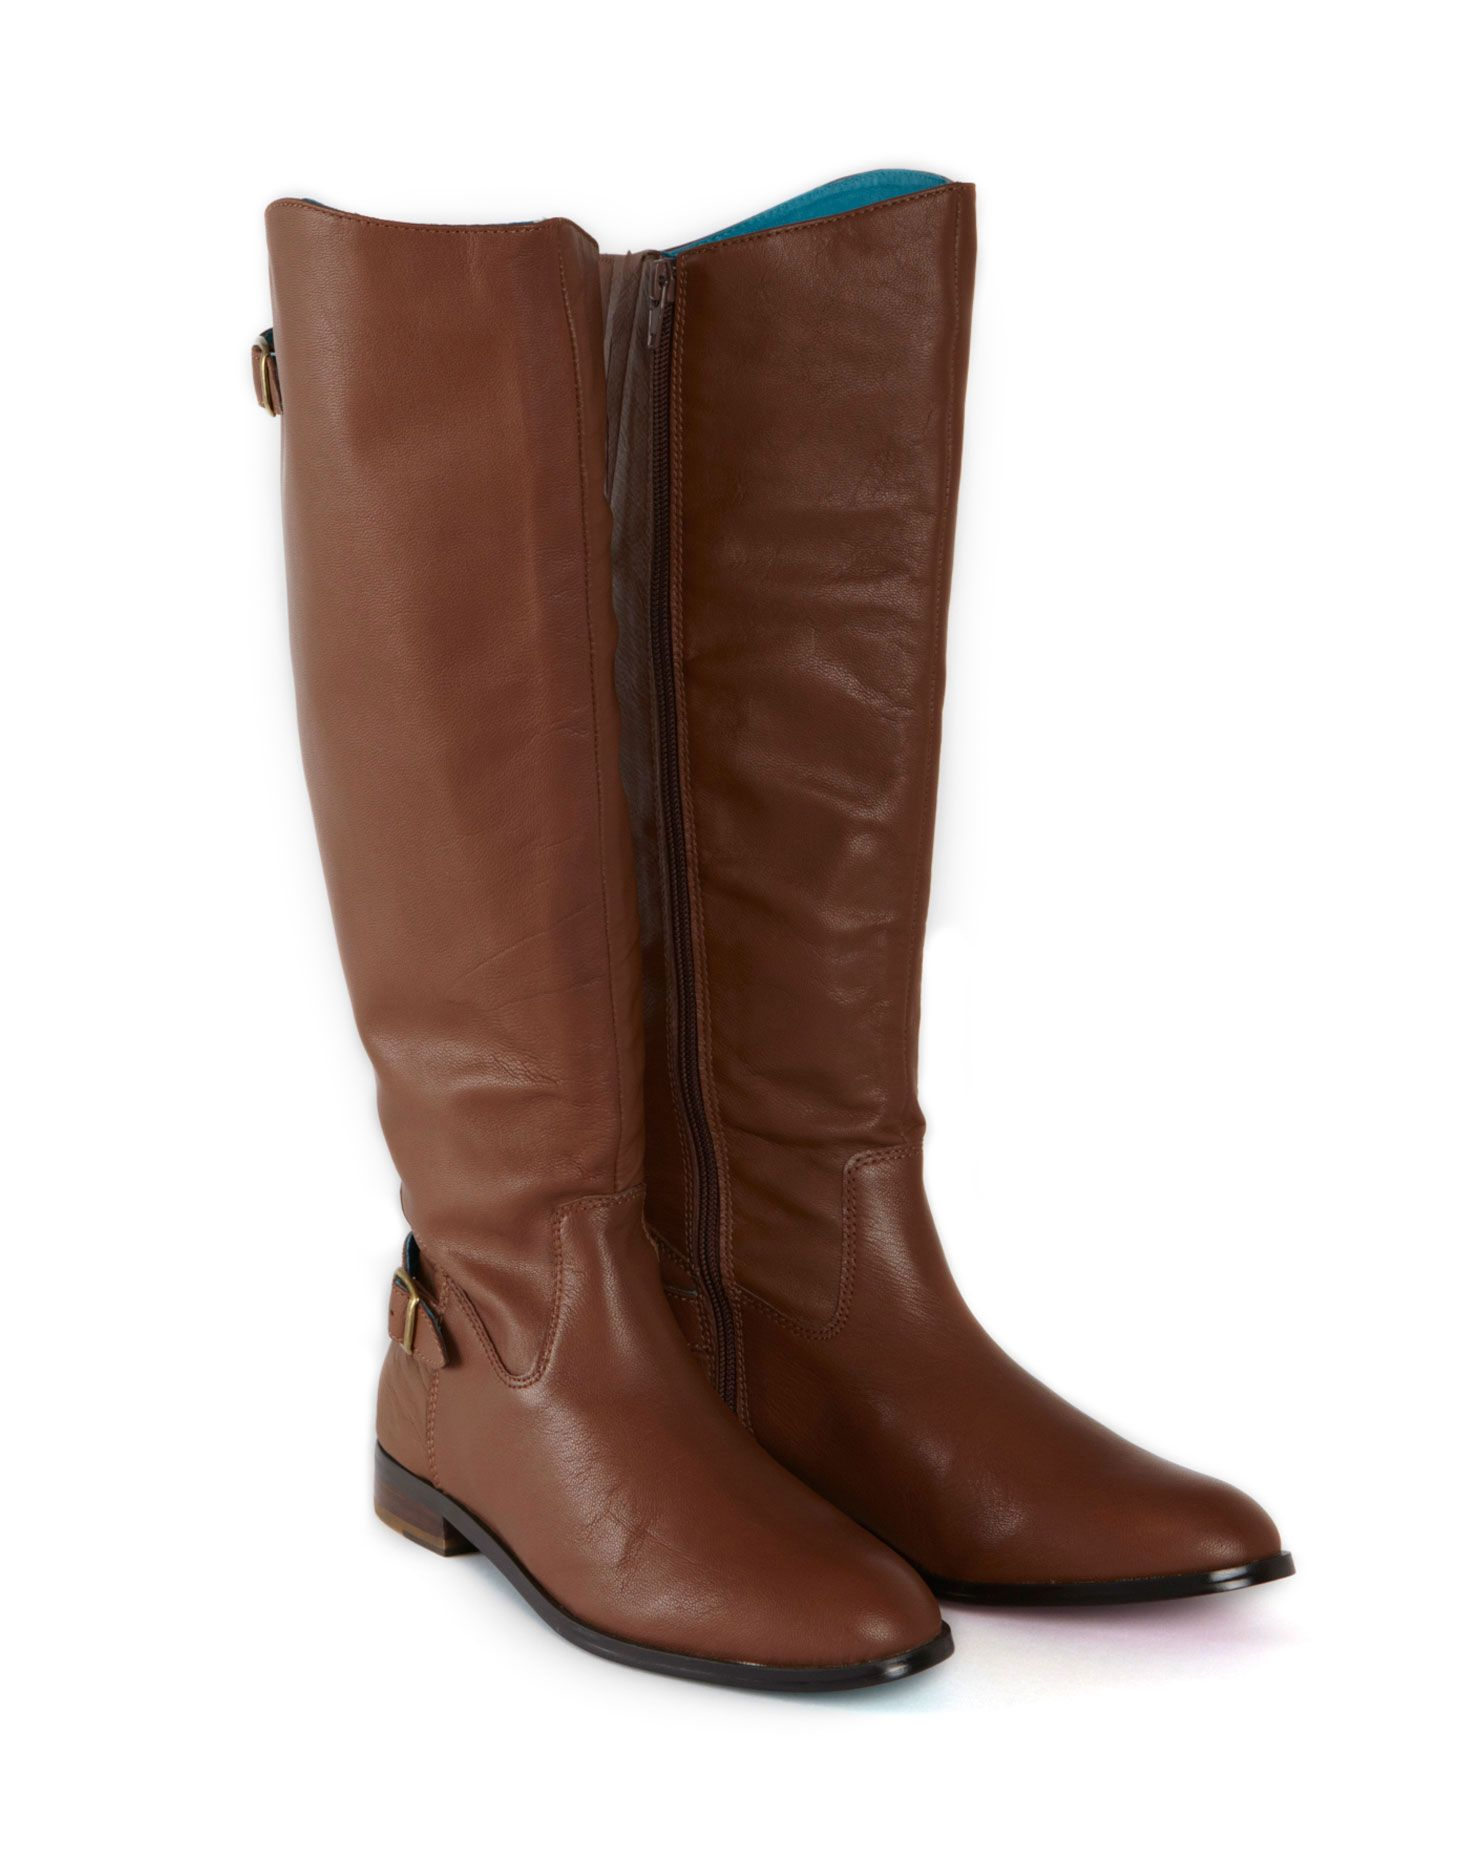 brown boots - Google Search | Wardrobe | Pinterest | Leather ...